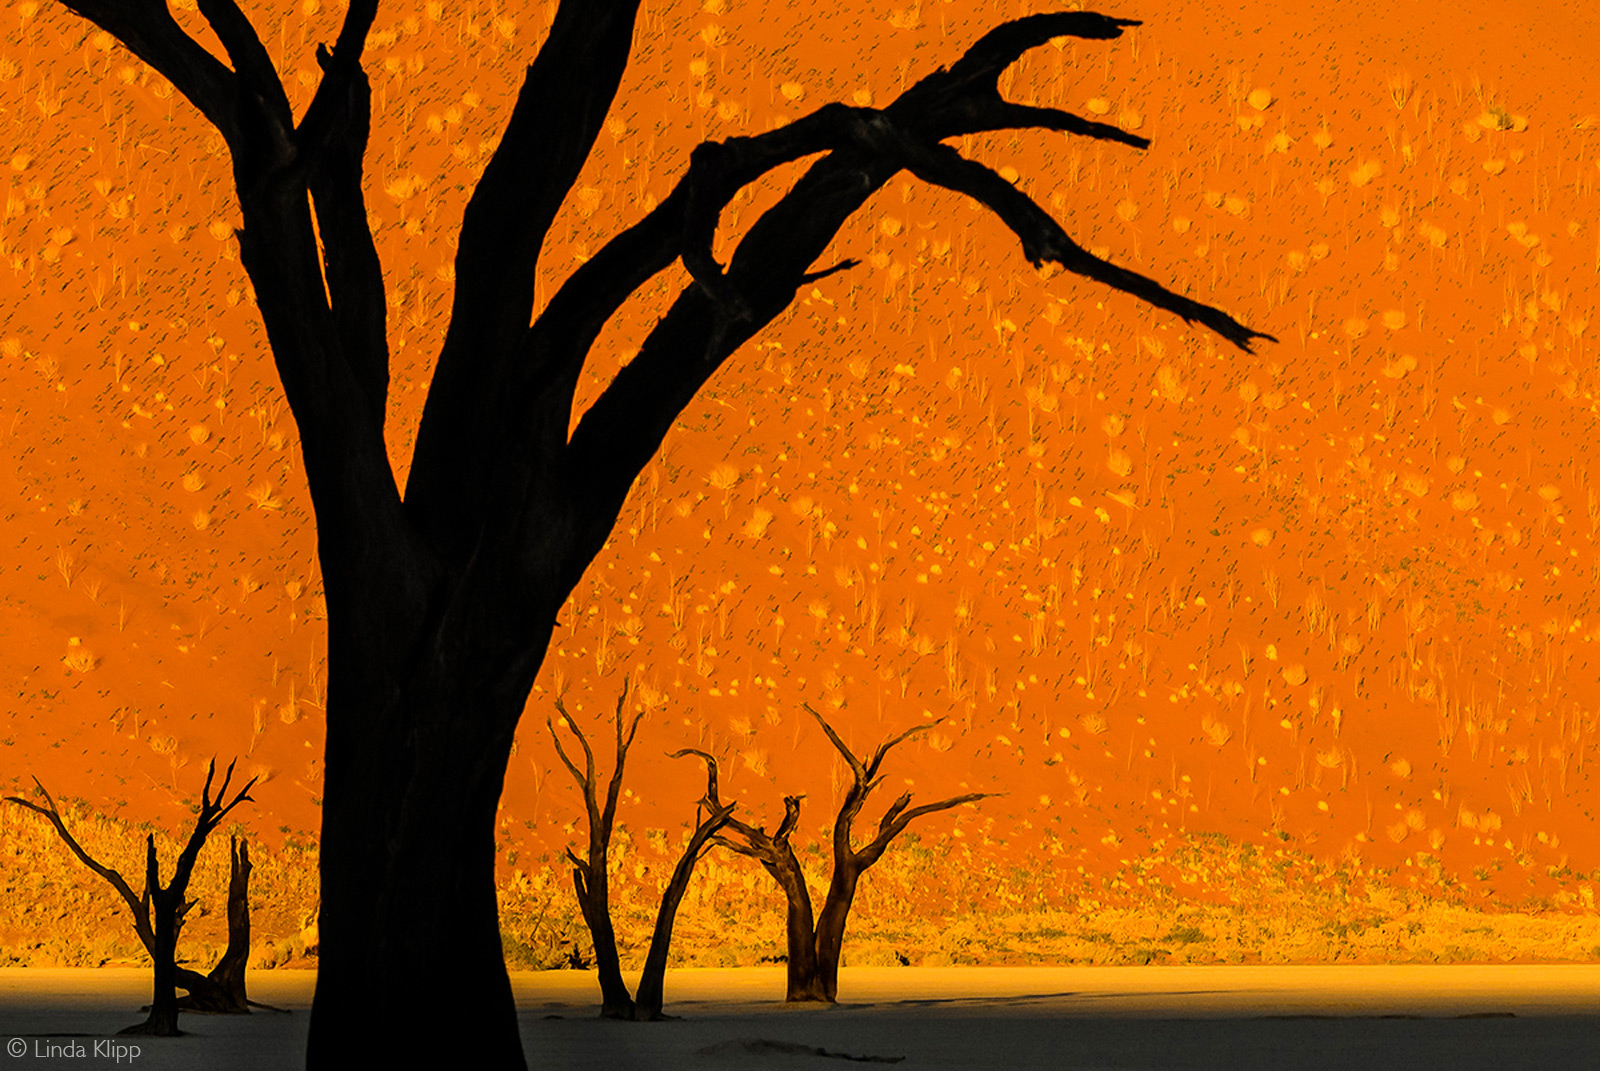 Dark silhouettes of dead trees against the light of sunset in Deadvlei, Namibia © Linda Klipp